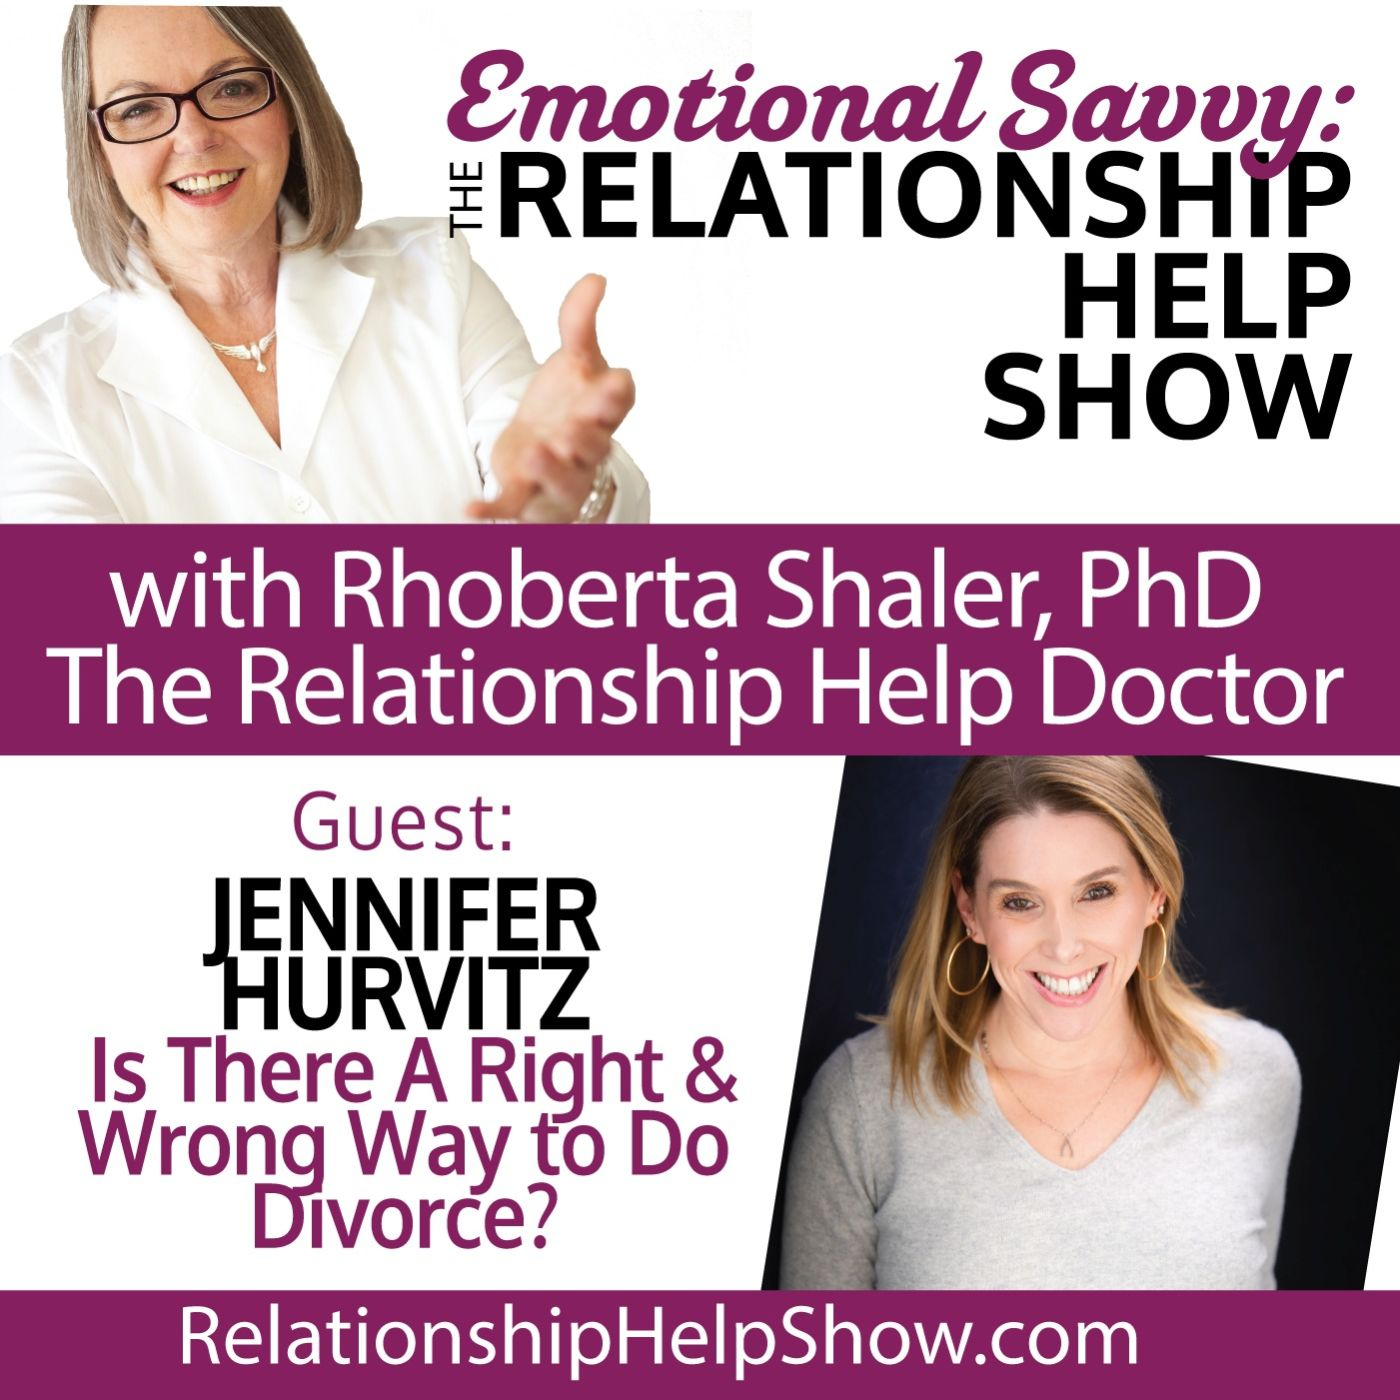 Is There a Right Way or Wrong Way to Divorce? GUEST: Jennifer Hurvitz